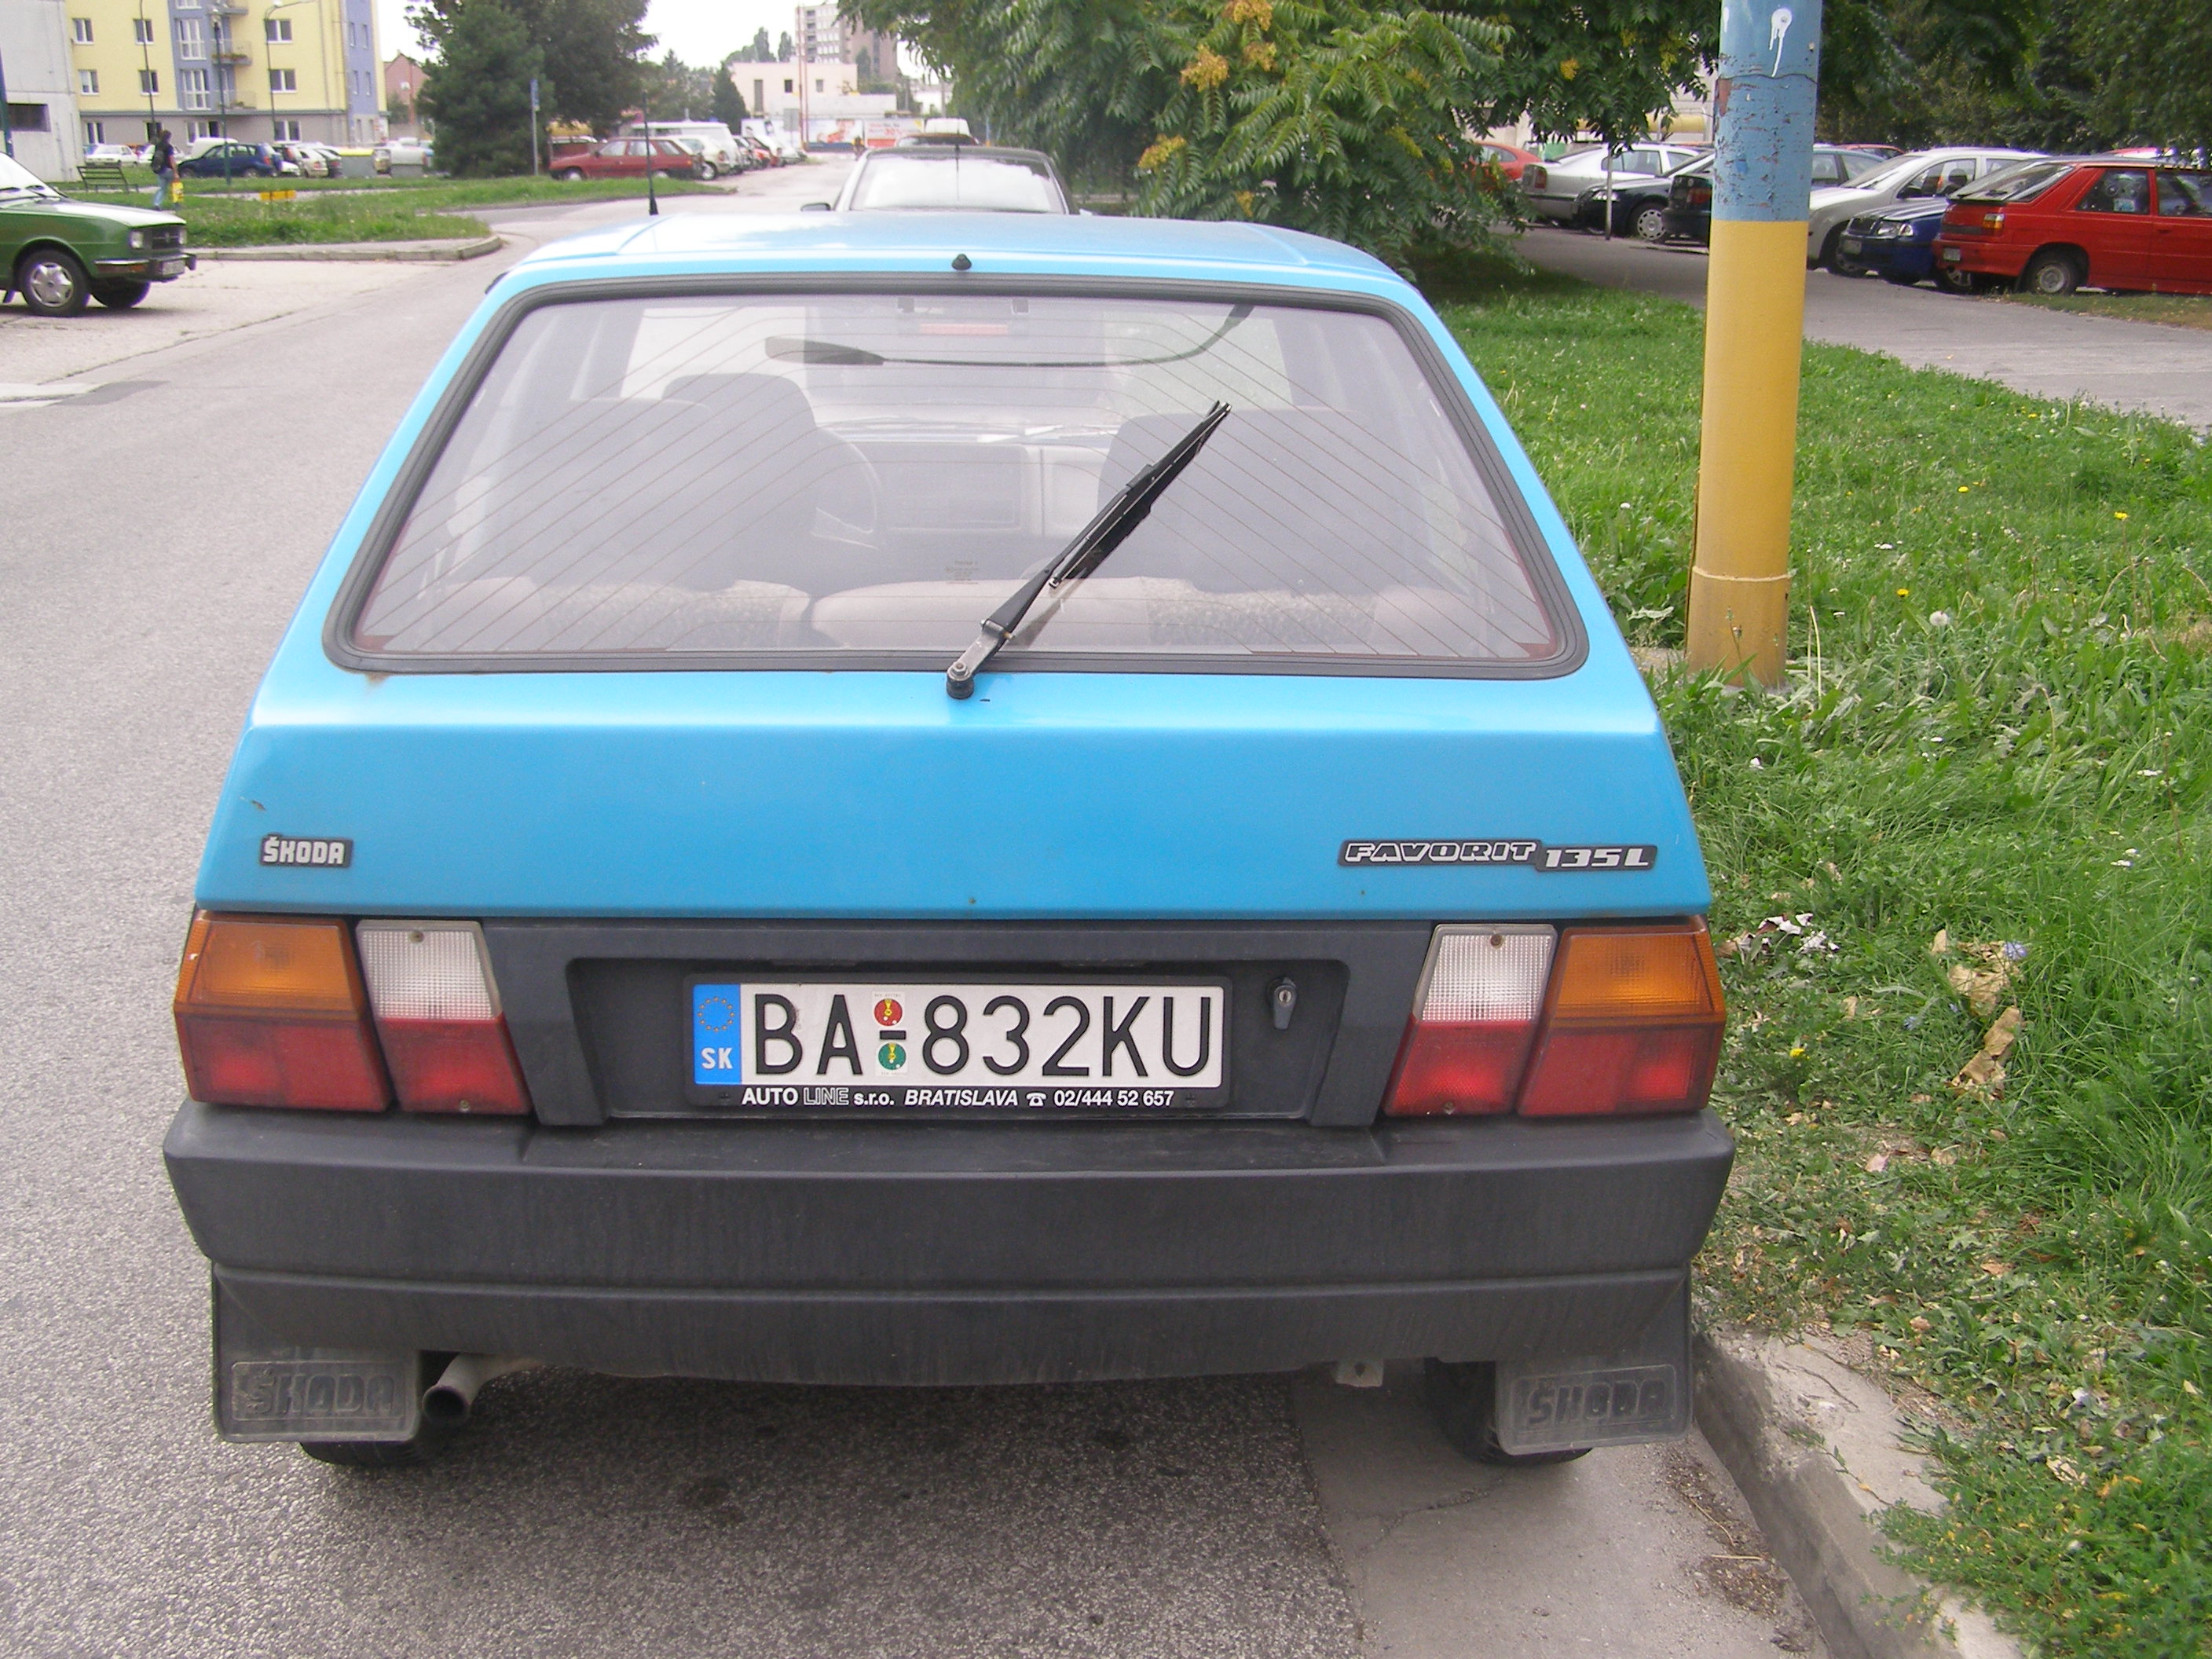 skoda favorit forman (785) 1993 pictures